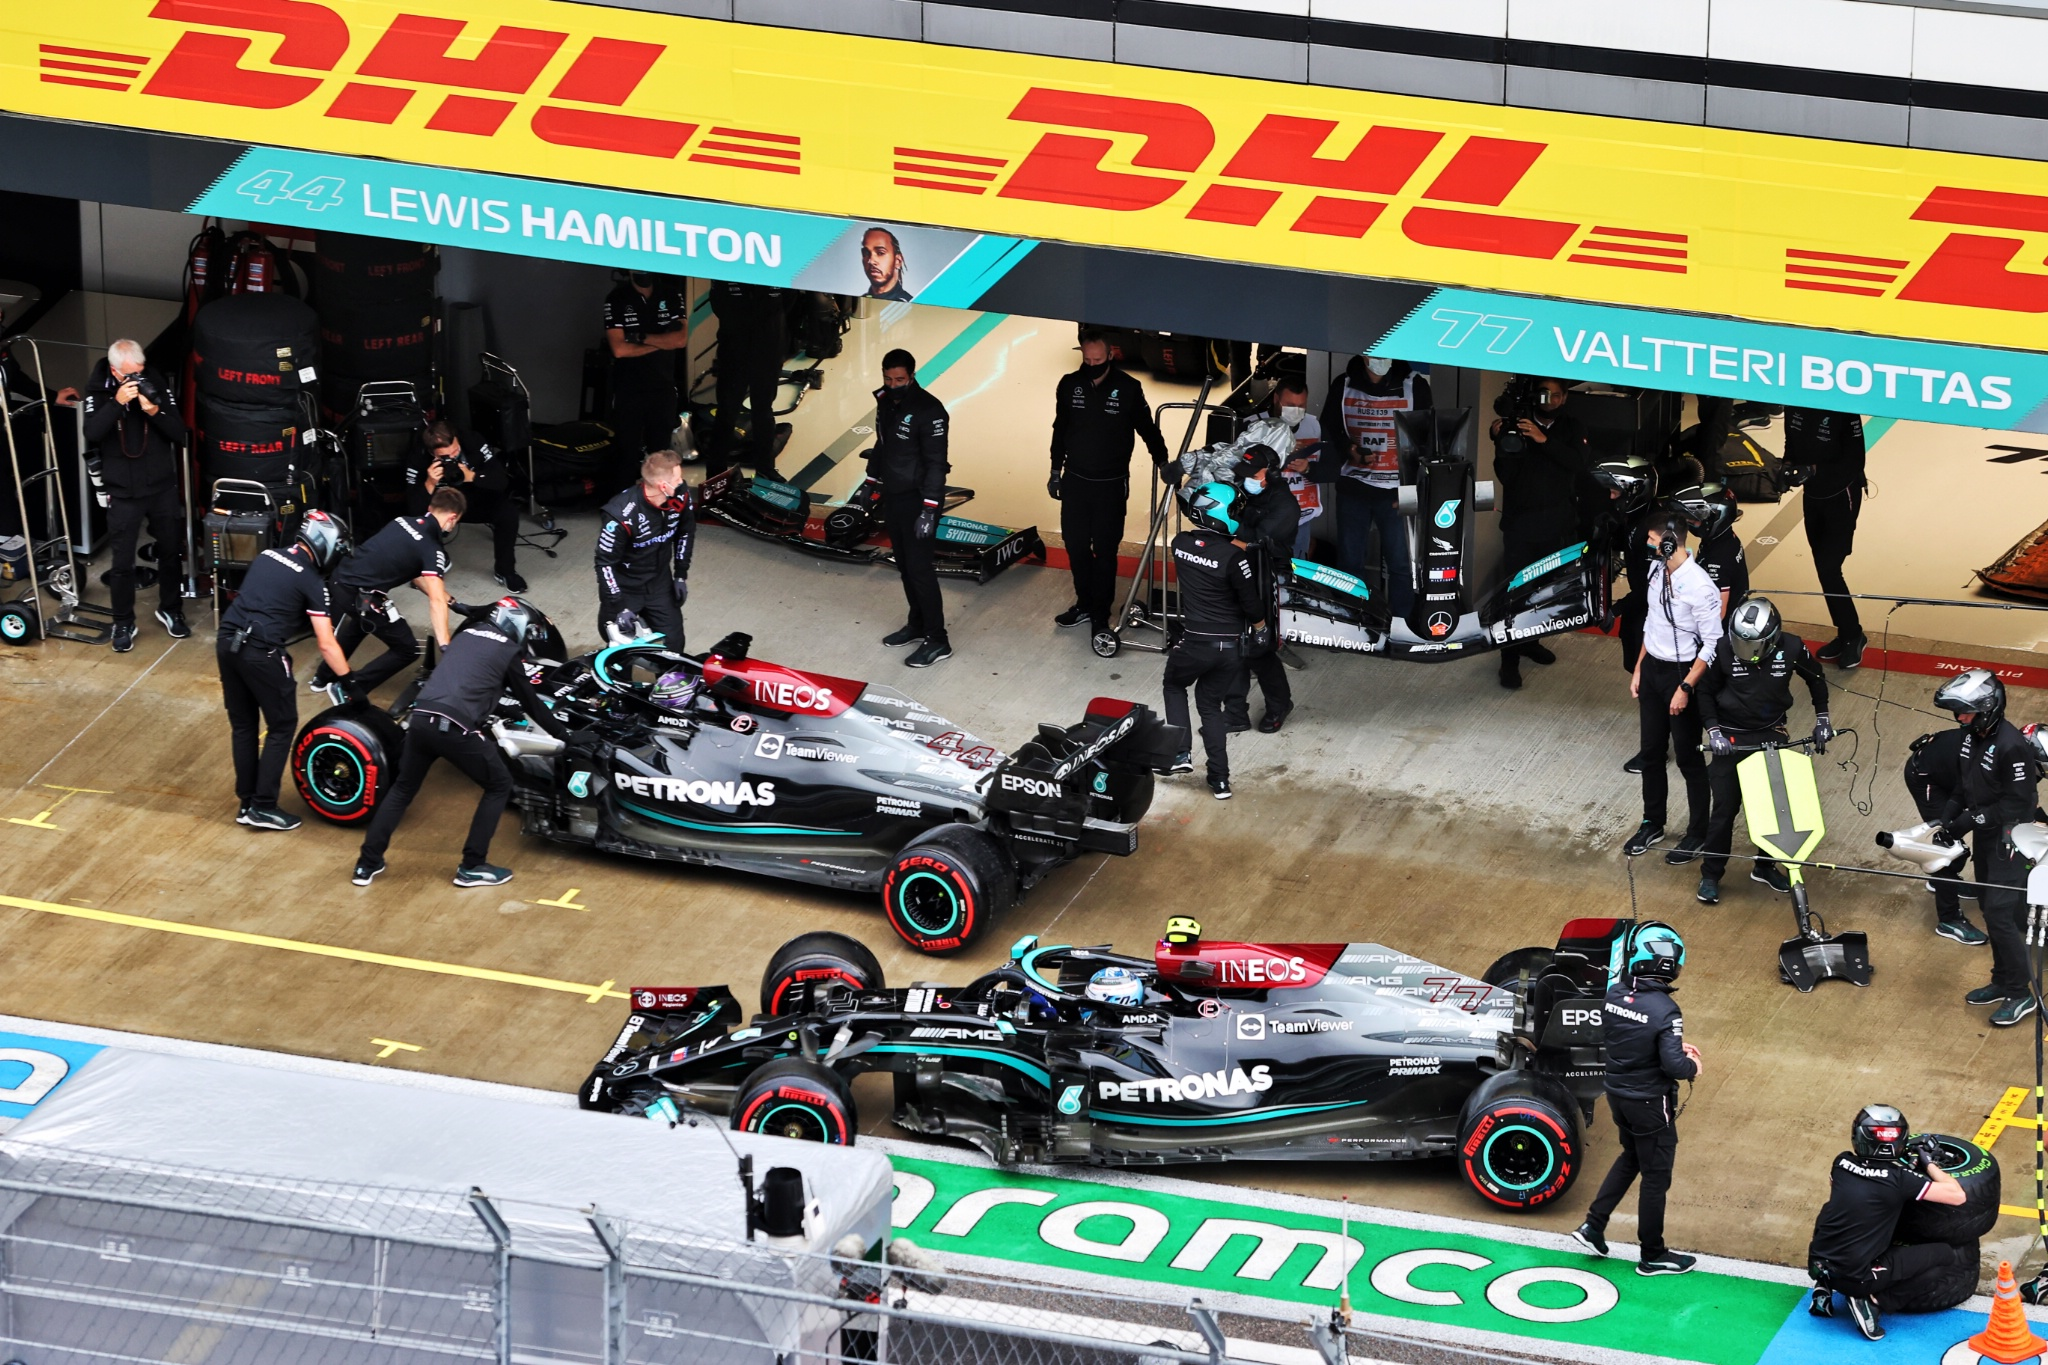 Lewis Hamilton (GBR) Mercedes AMG F1 W12 in the pits with a broken front wing ahead of team mate Valtteri Bottas (FIN) Mercedes AMG F1 W12.